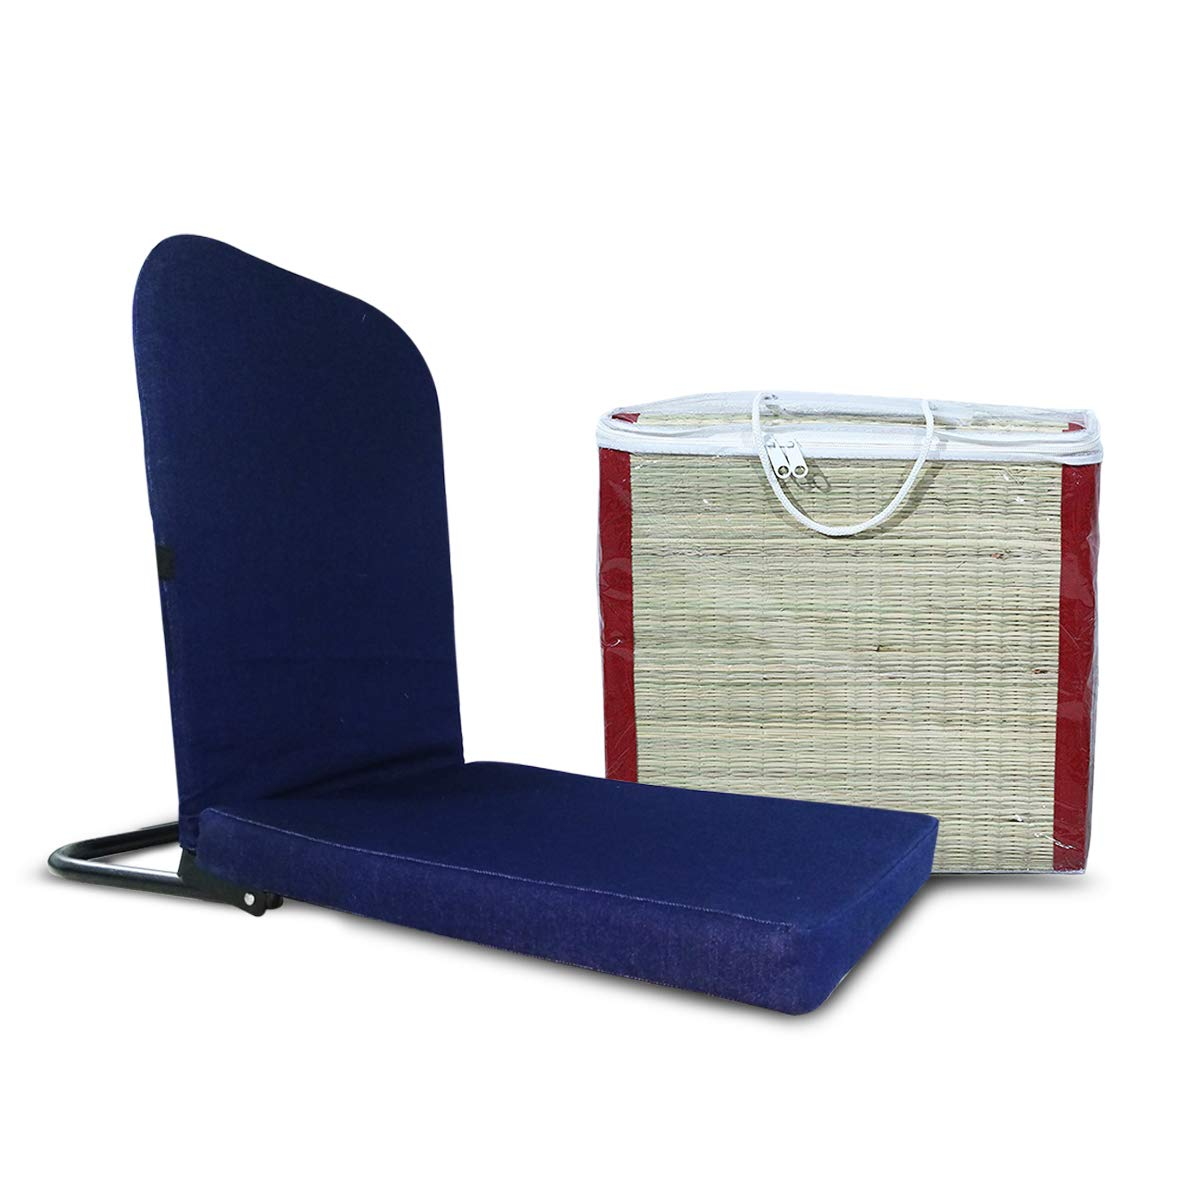 KAWACHI Right Angle Back Support Portable Relaxing Folding Yoga Meditation Floor Chair with ECO Friendly Yoga MAT